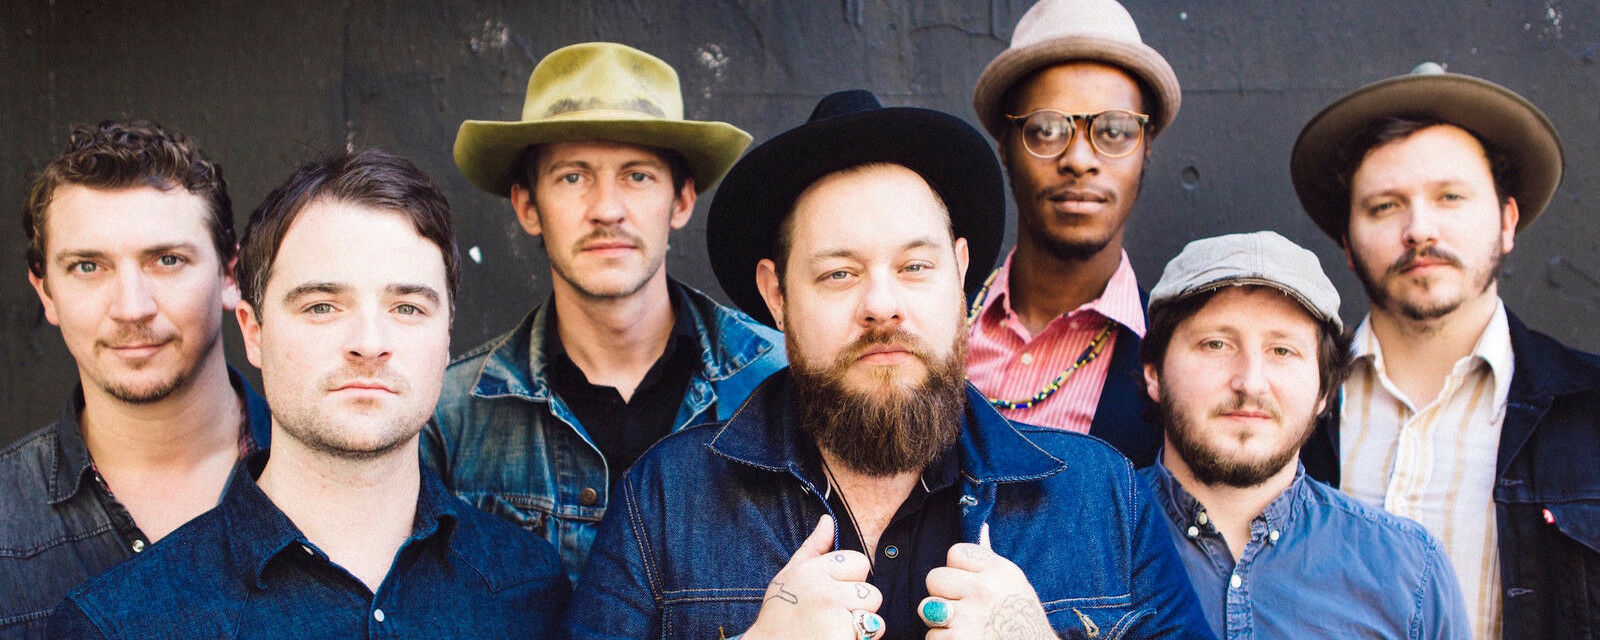 Nathaniel Rateliff & The Night Sweats with The Head and the Heart